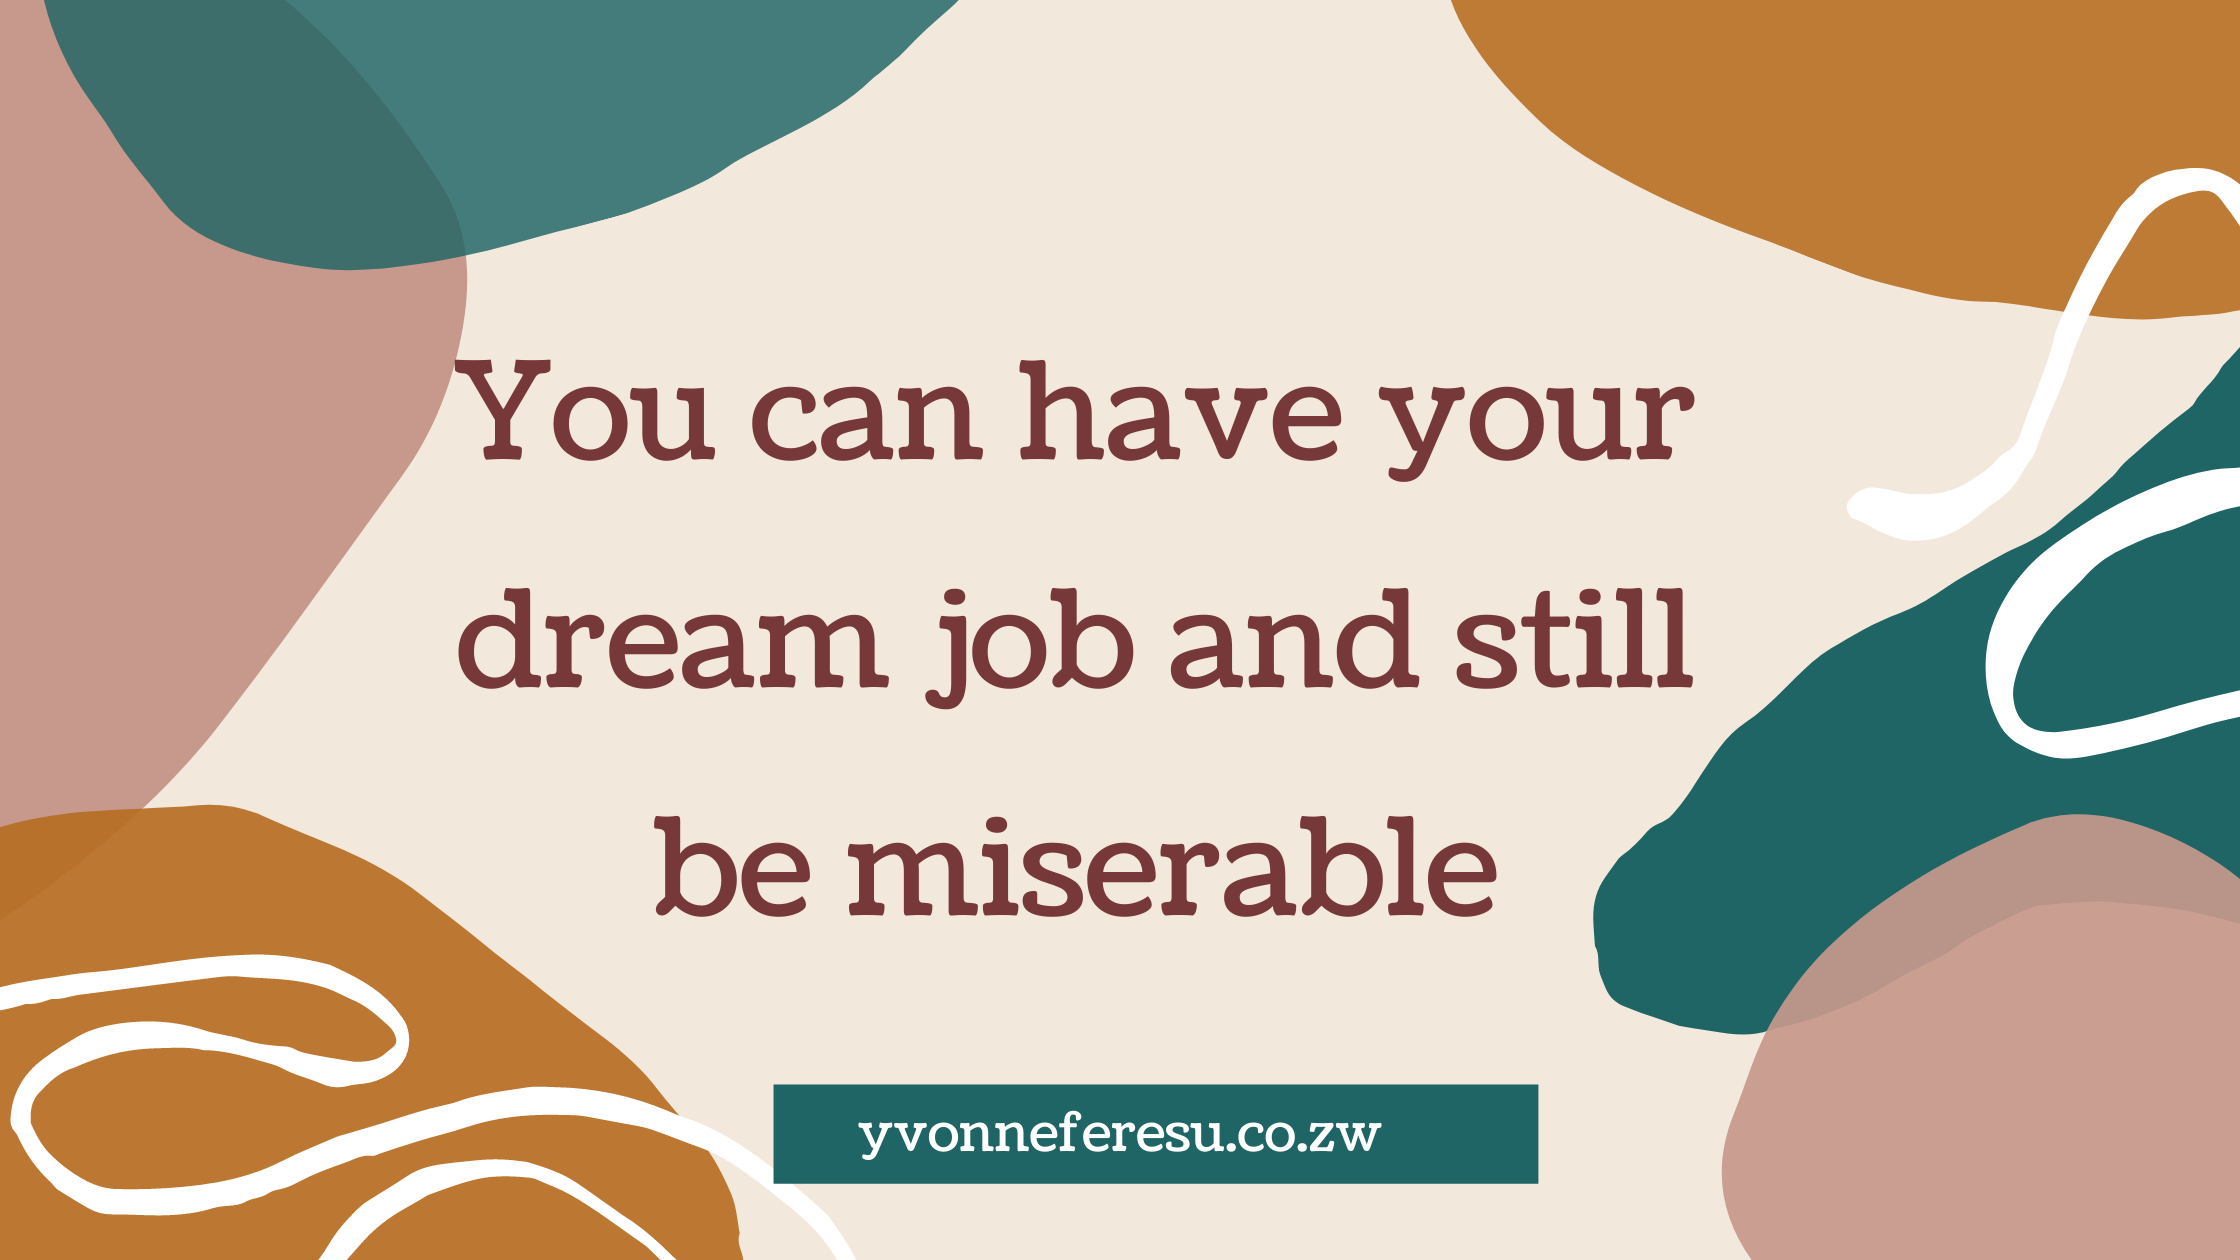 You can have your dream job and still be miserable